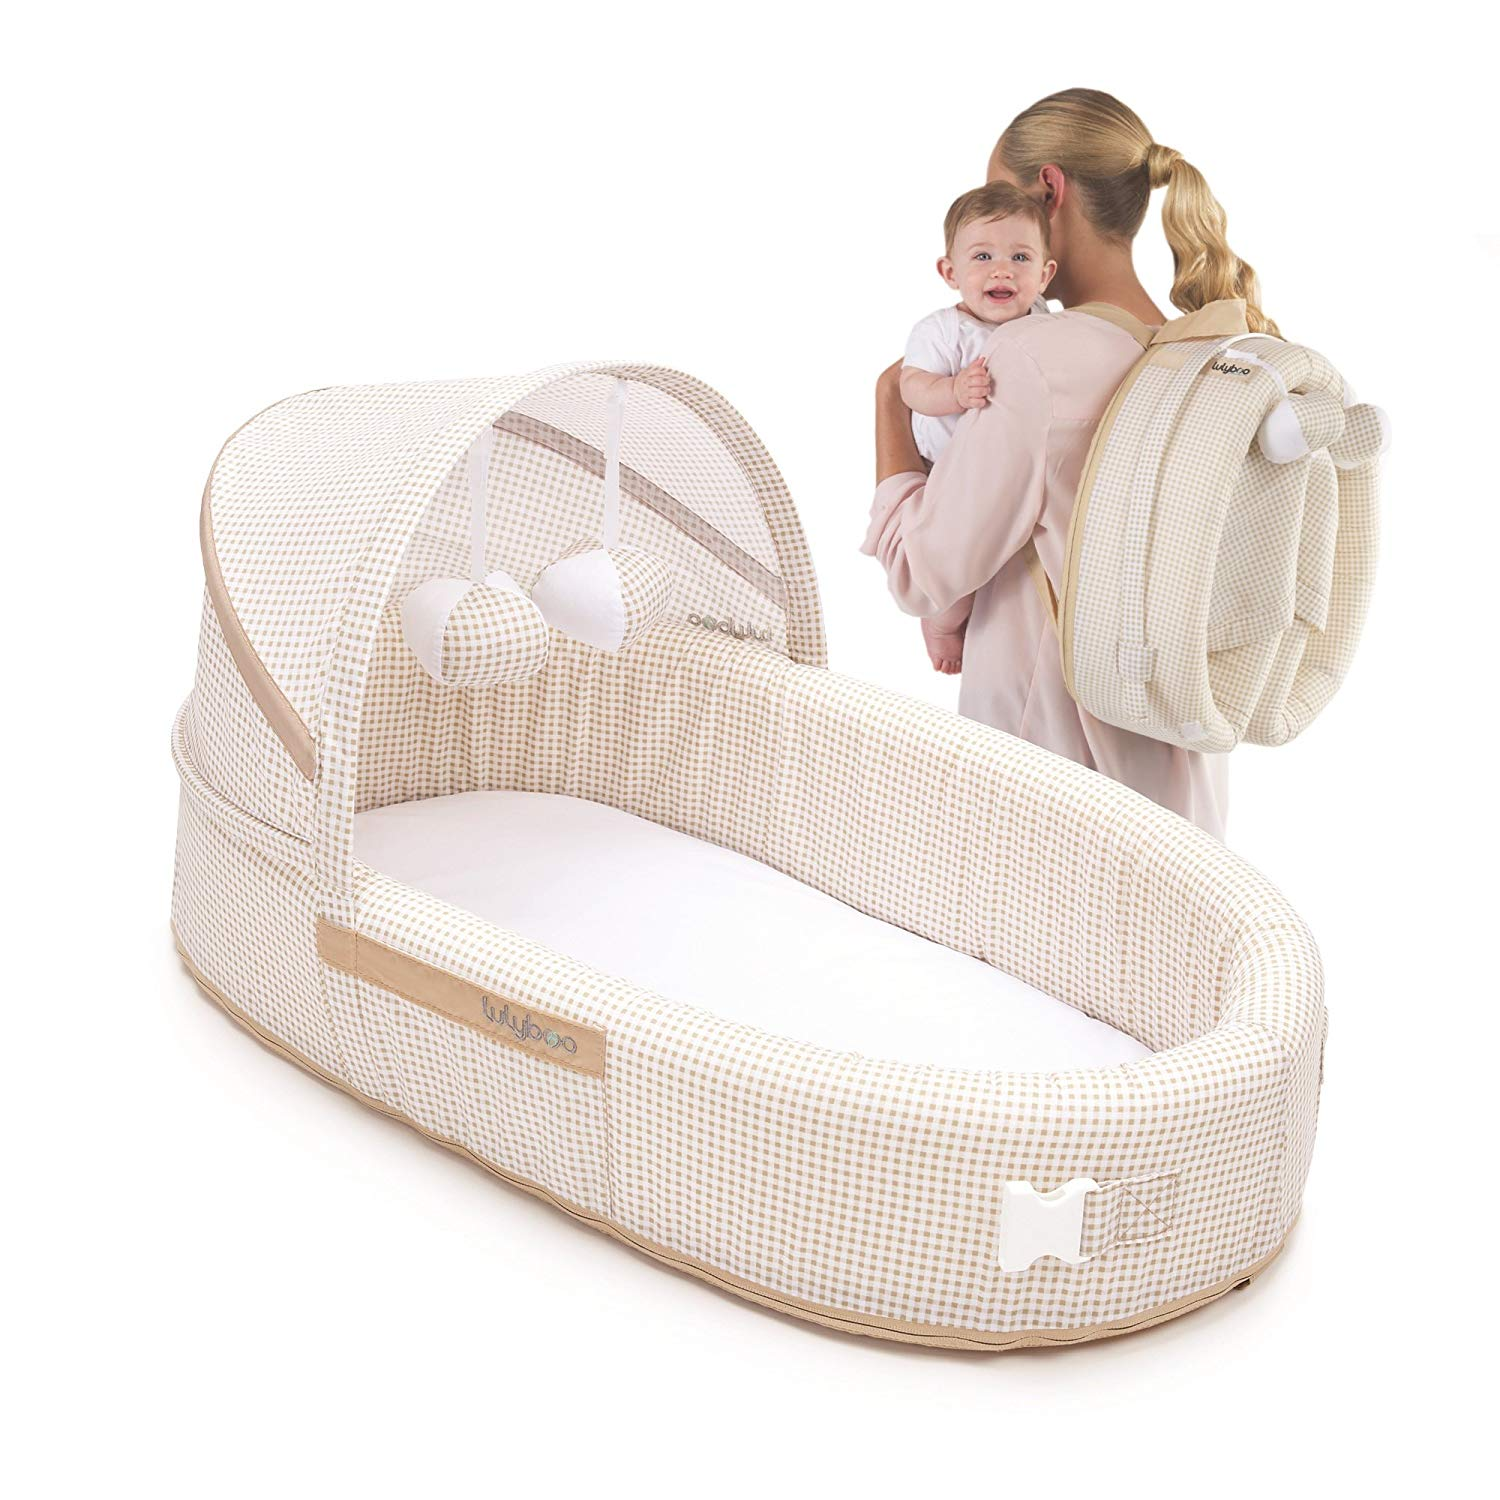 LulyBoo Bassinet To-Go Natural